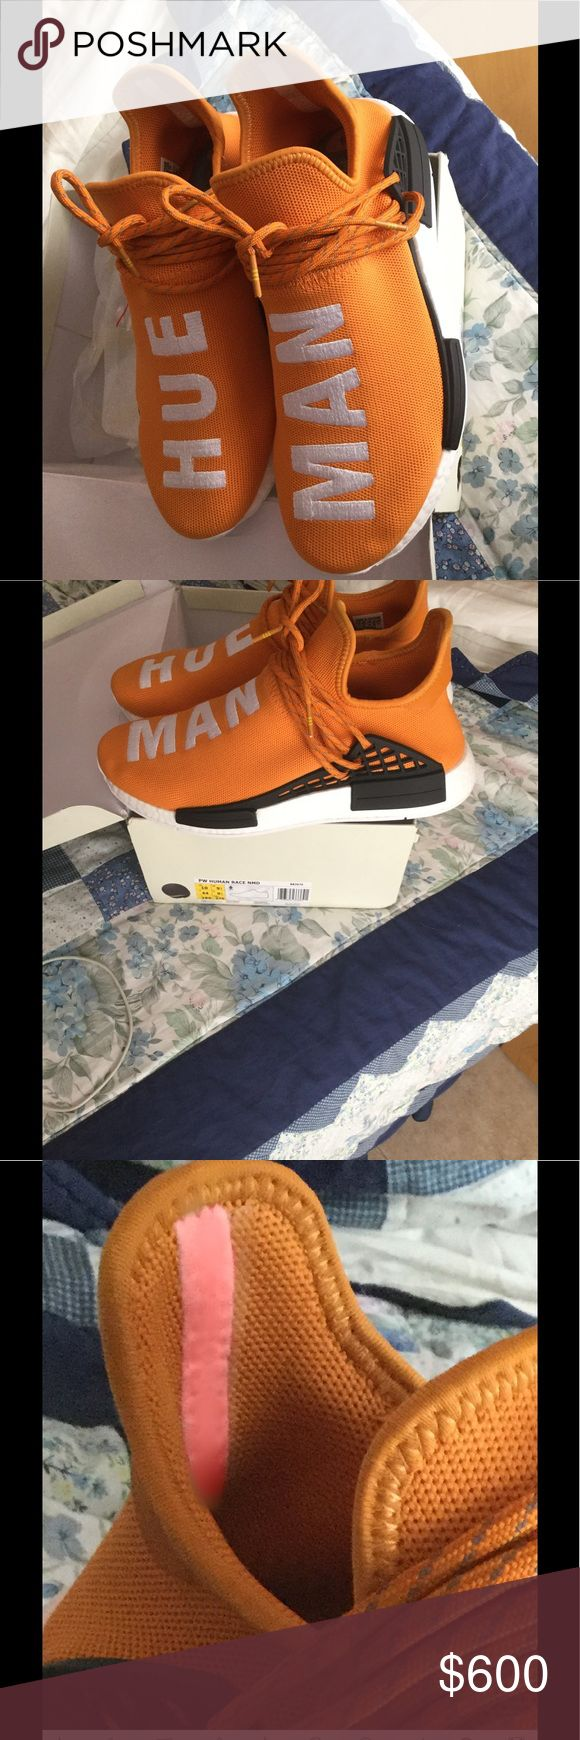 NMD Adidas x PW Human Race Tangerine The adidas HU NMD x Pharrell Williams debuted in 2016 at part of the Pharrel Williams = adidas Originals line. Inspired by unity and the human race, the sneaker was based on the original NMD and featured a Primeknit up